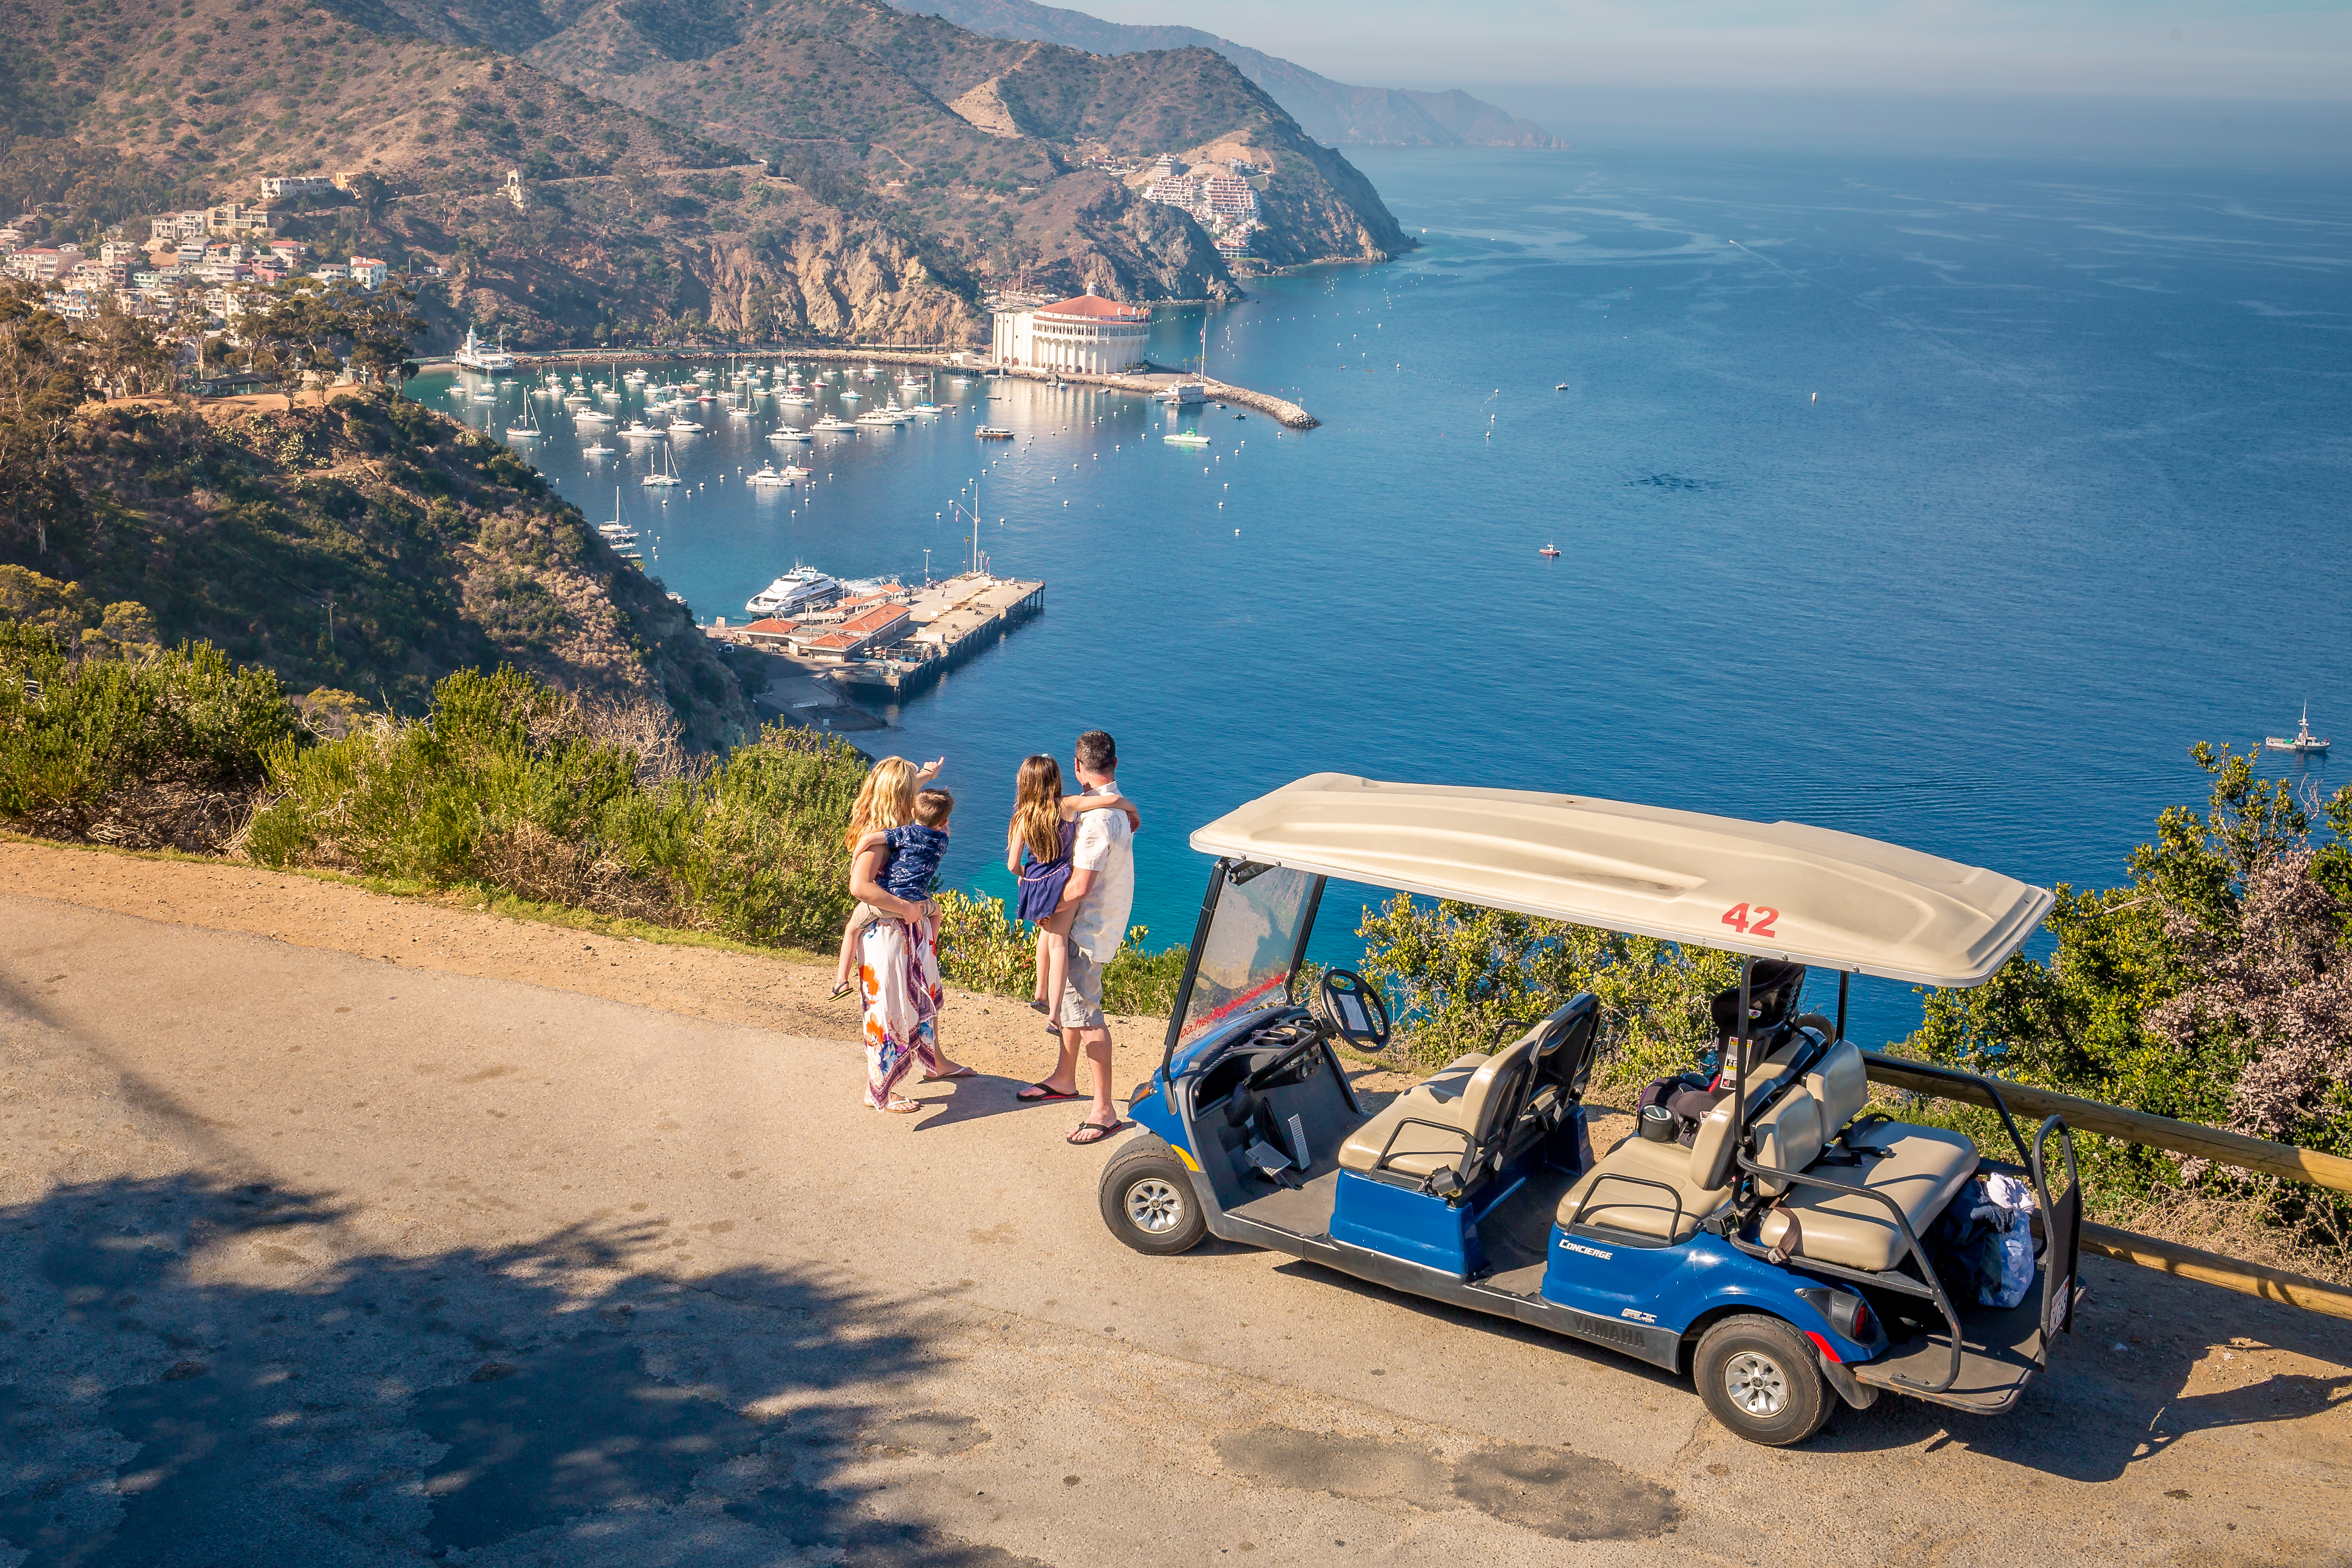 Family next to golf cart overlooking the ocean.